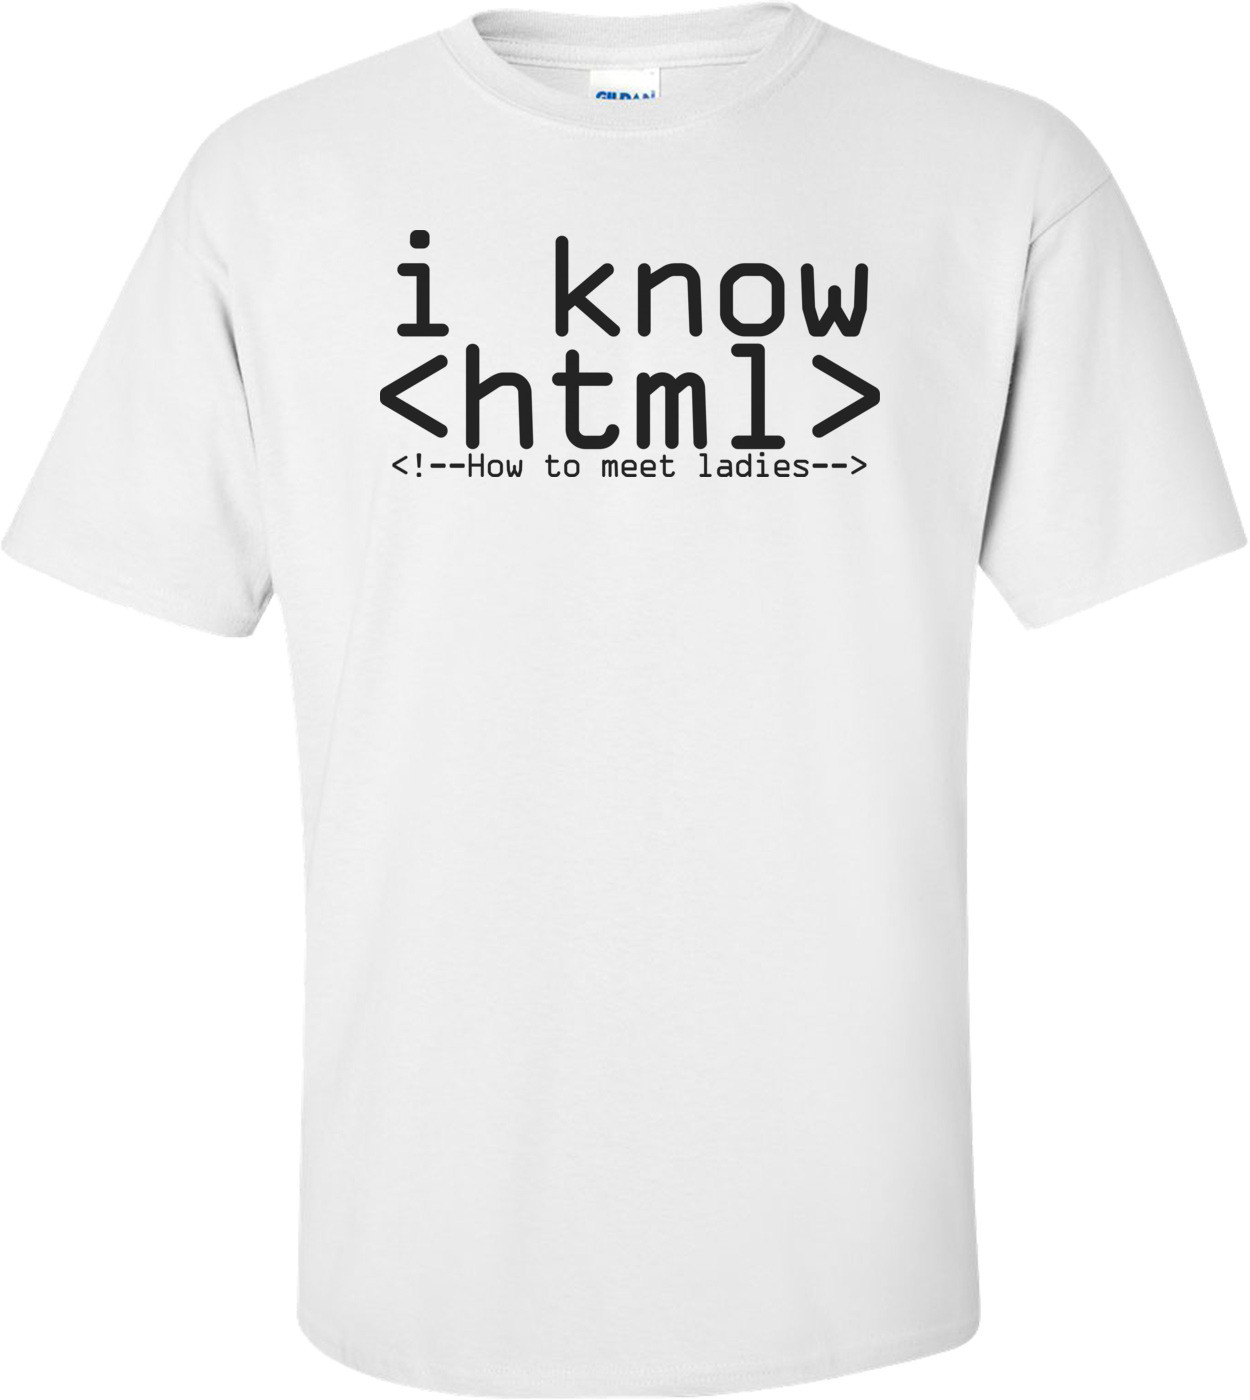 I Know HTML Funny Nerd T-shirt